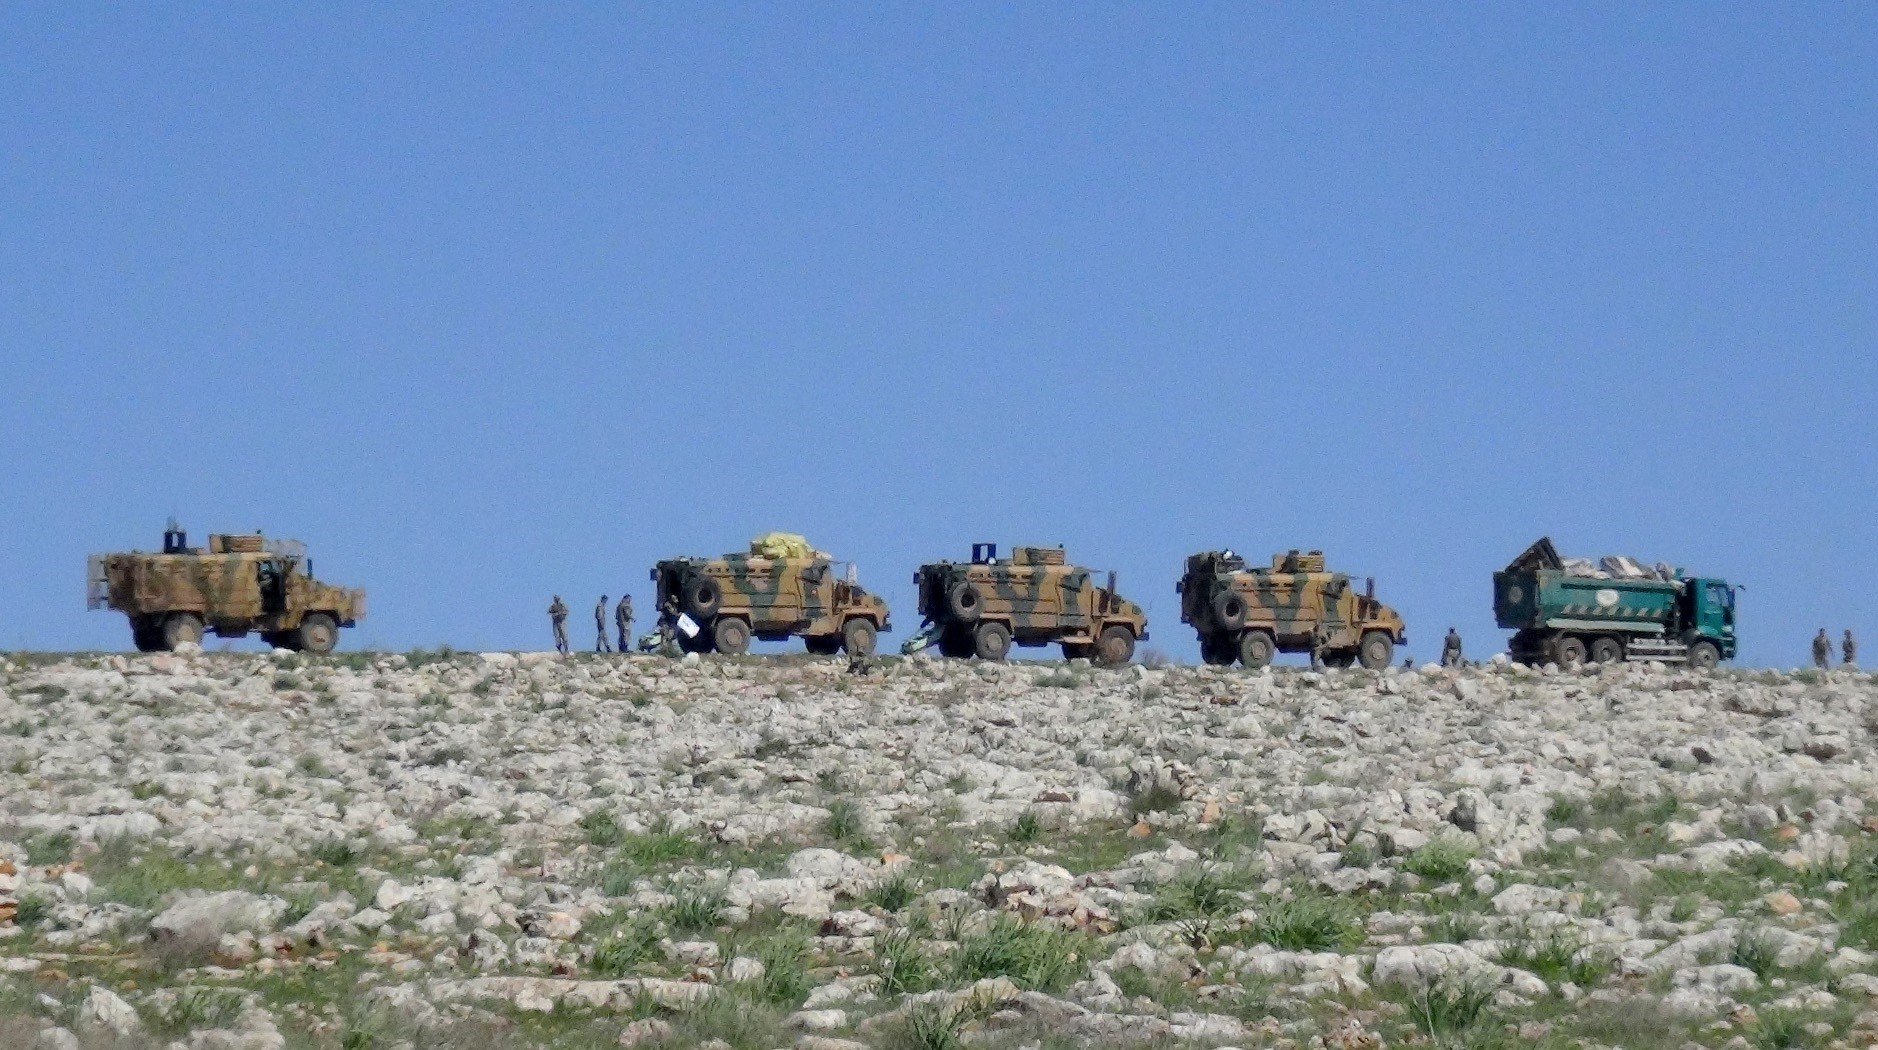 A Turkish military convoy en route to Idlib to establish a monitoring post in the assigned de-escalation zone, March 17.